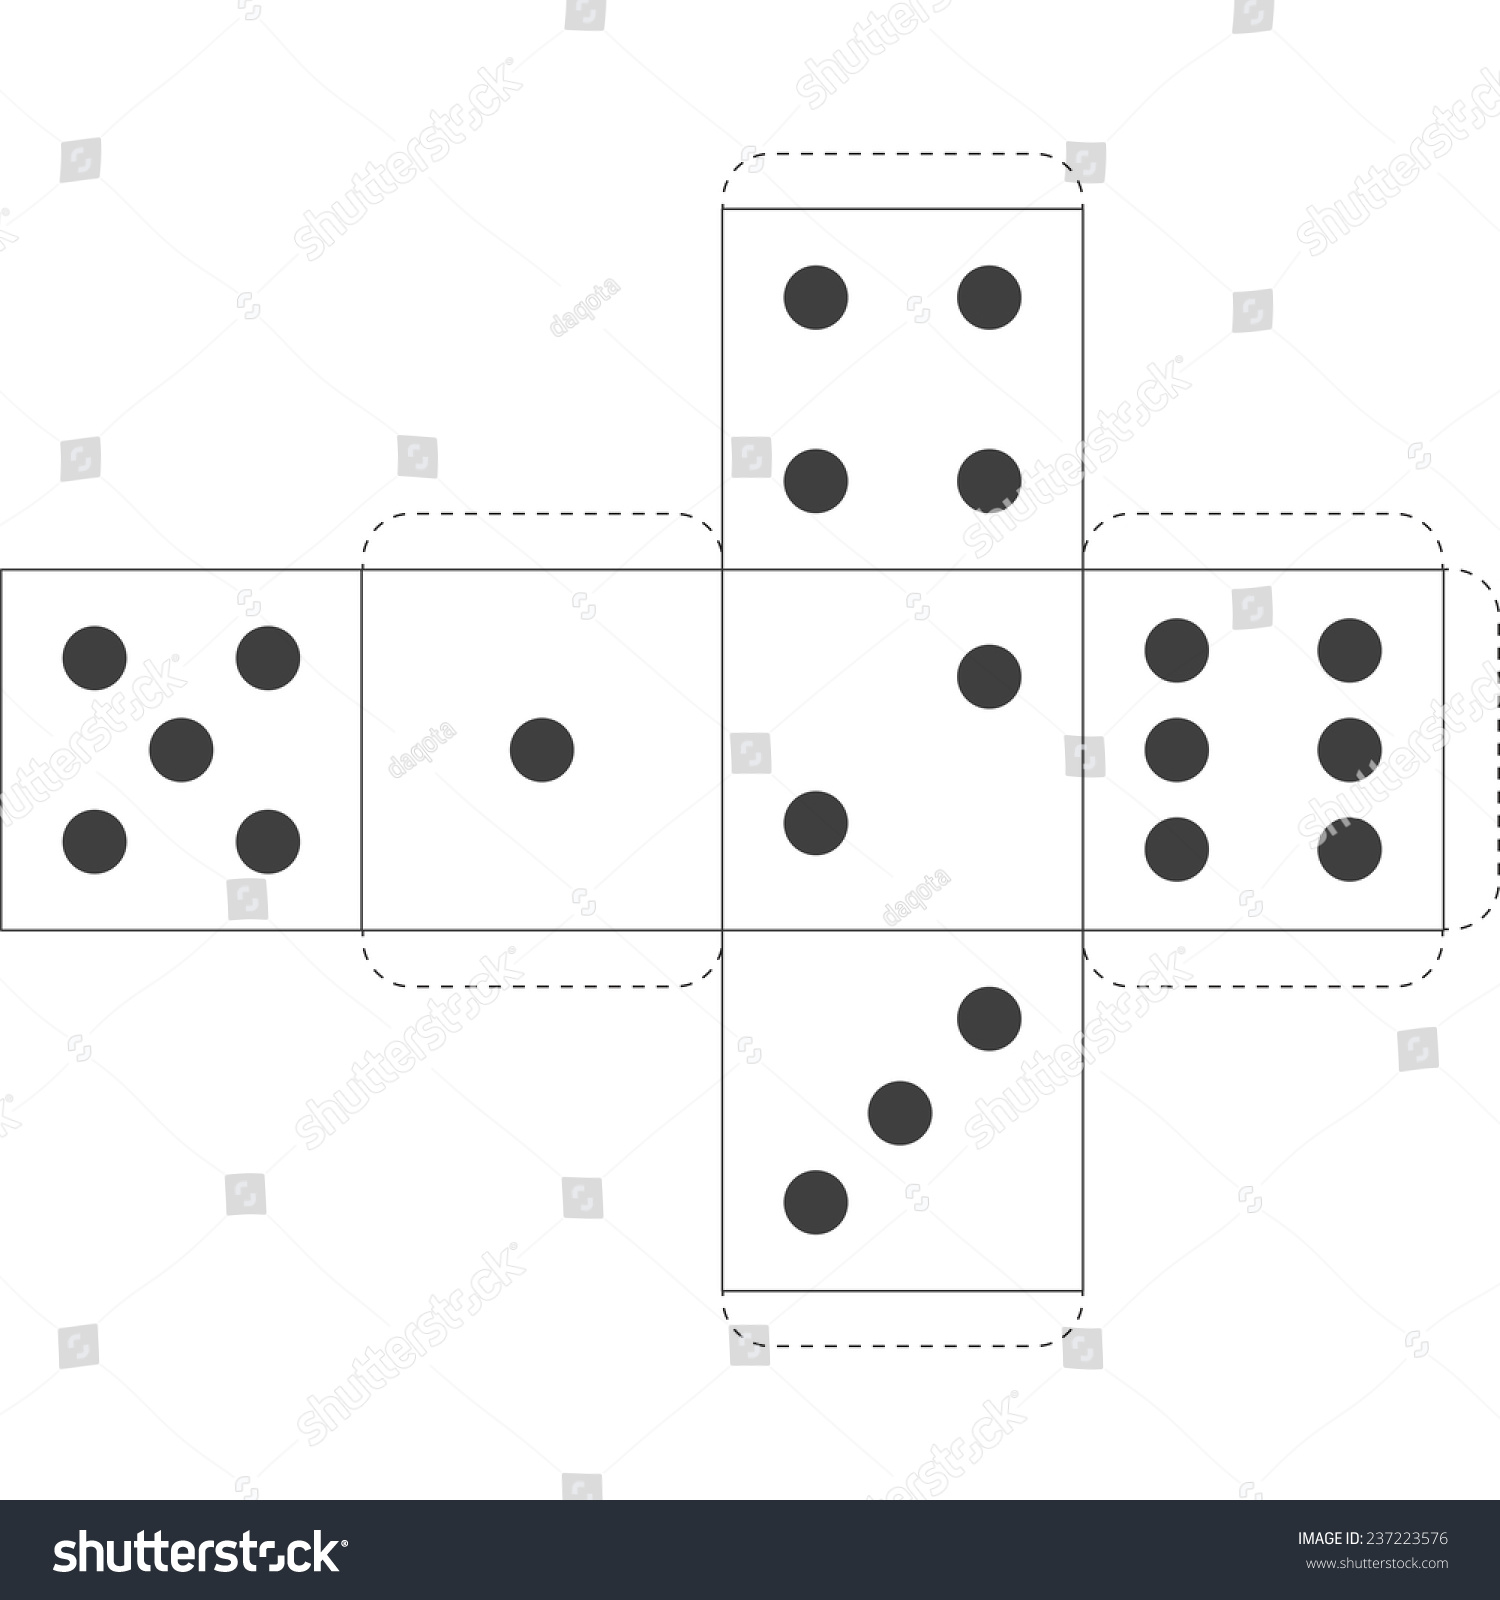 Paper Dice Template Vector Stock Vector 237223576